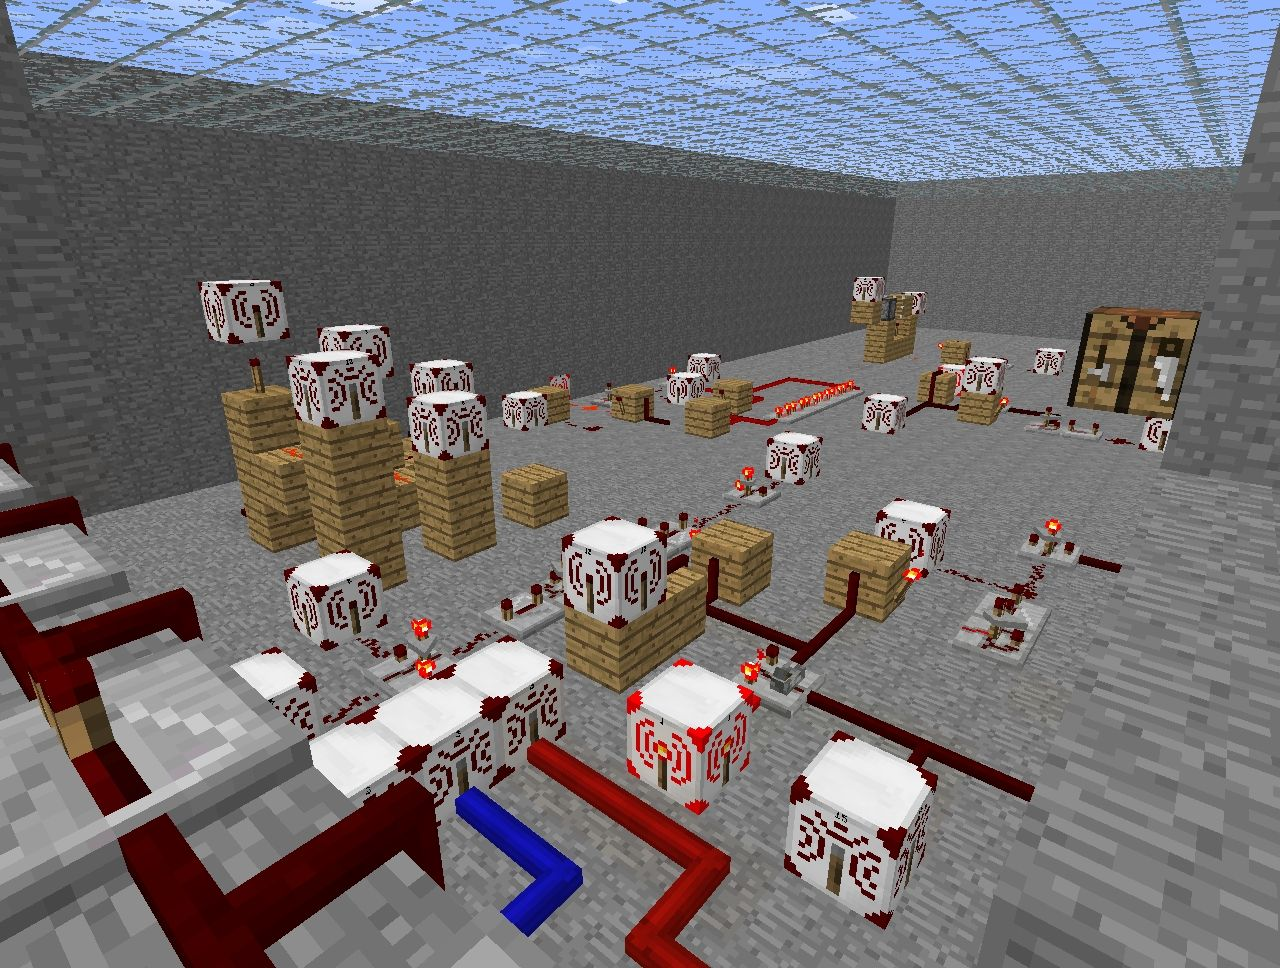 The redstone.